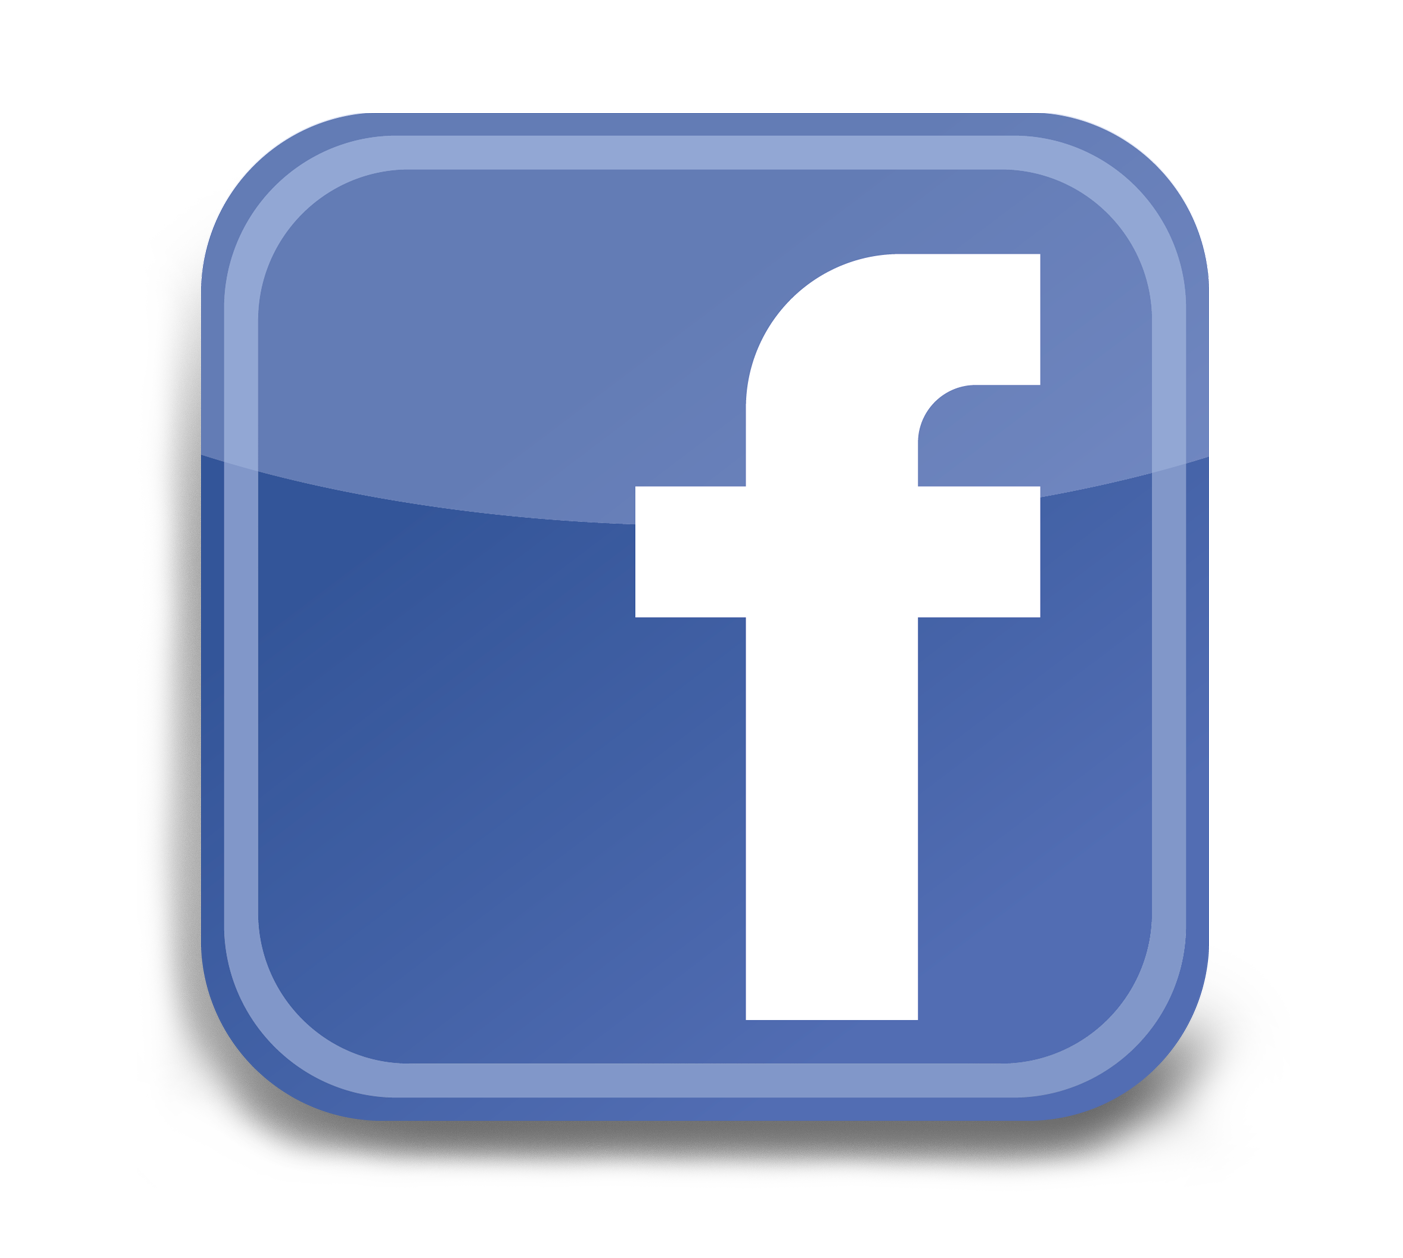 logo-facebook-nuovo-png